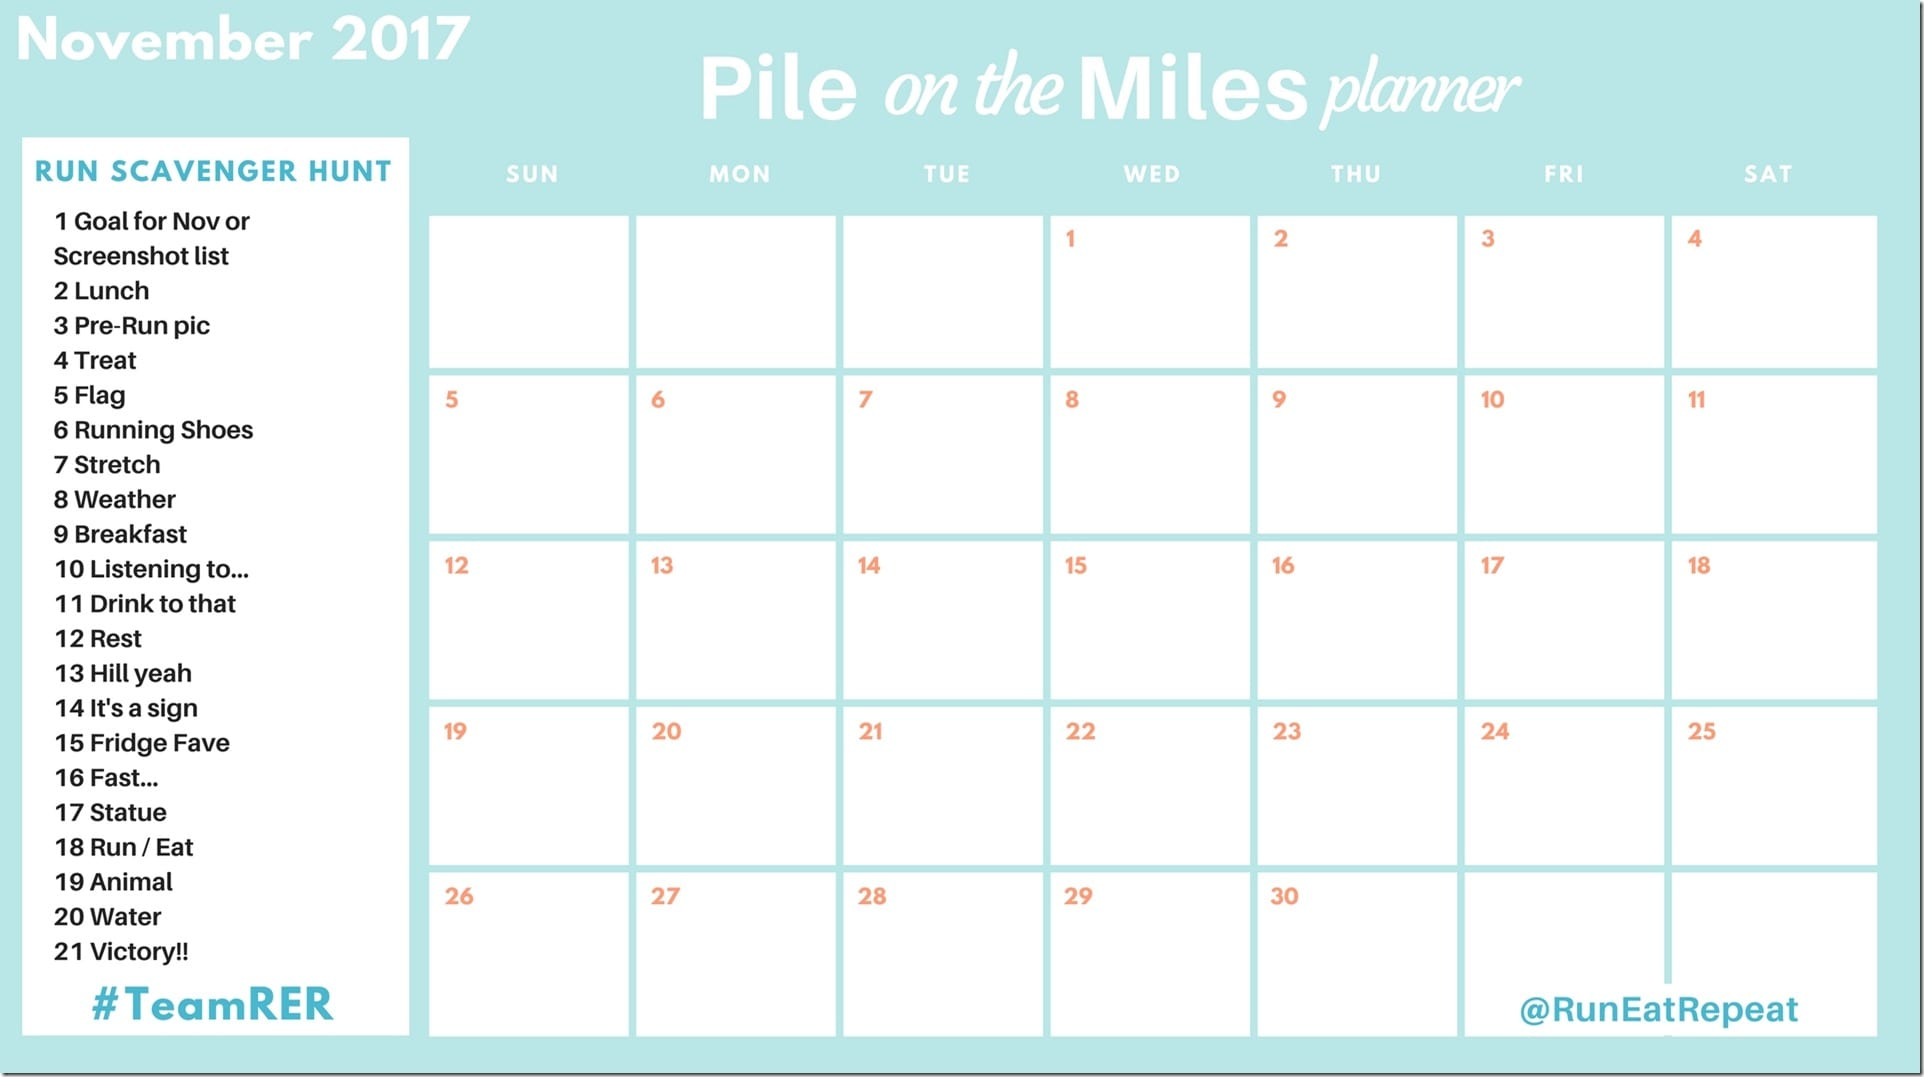 Pile on the Miles planner